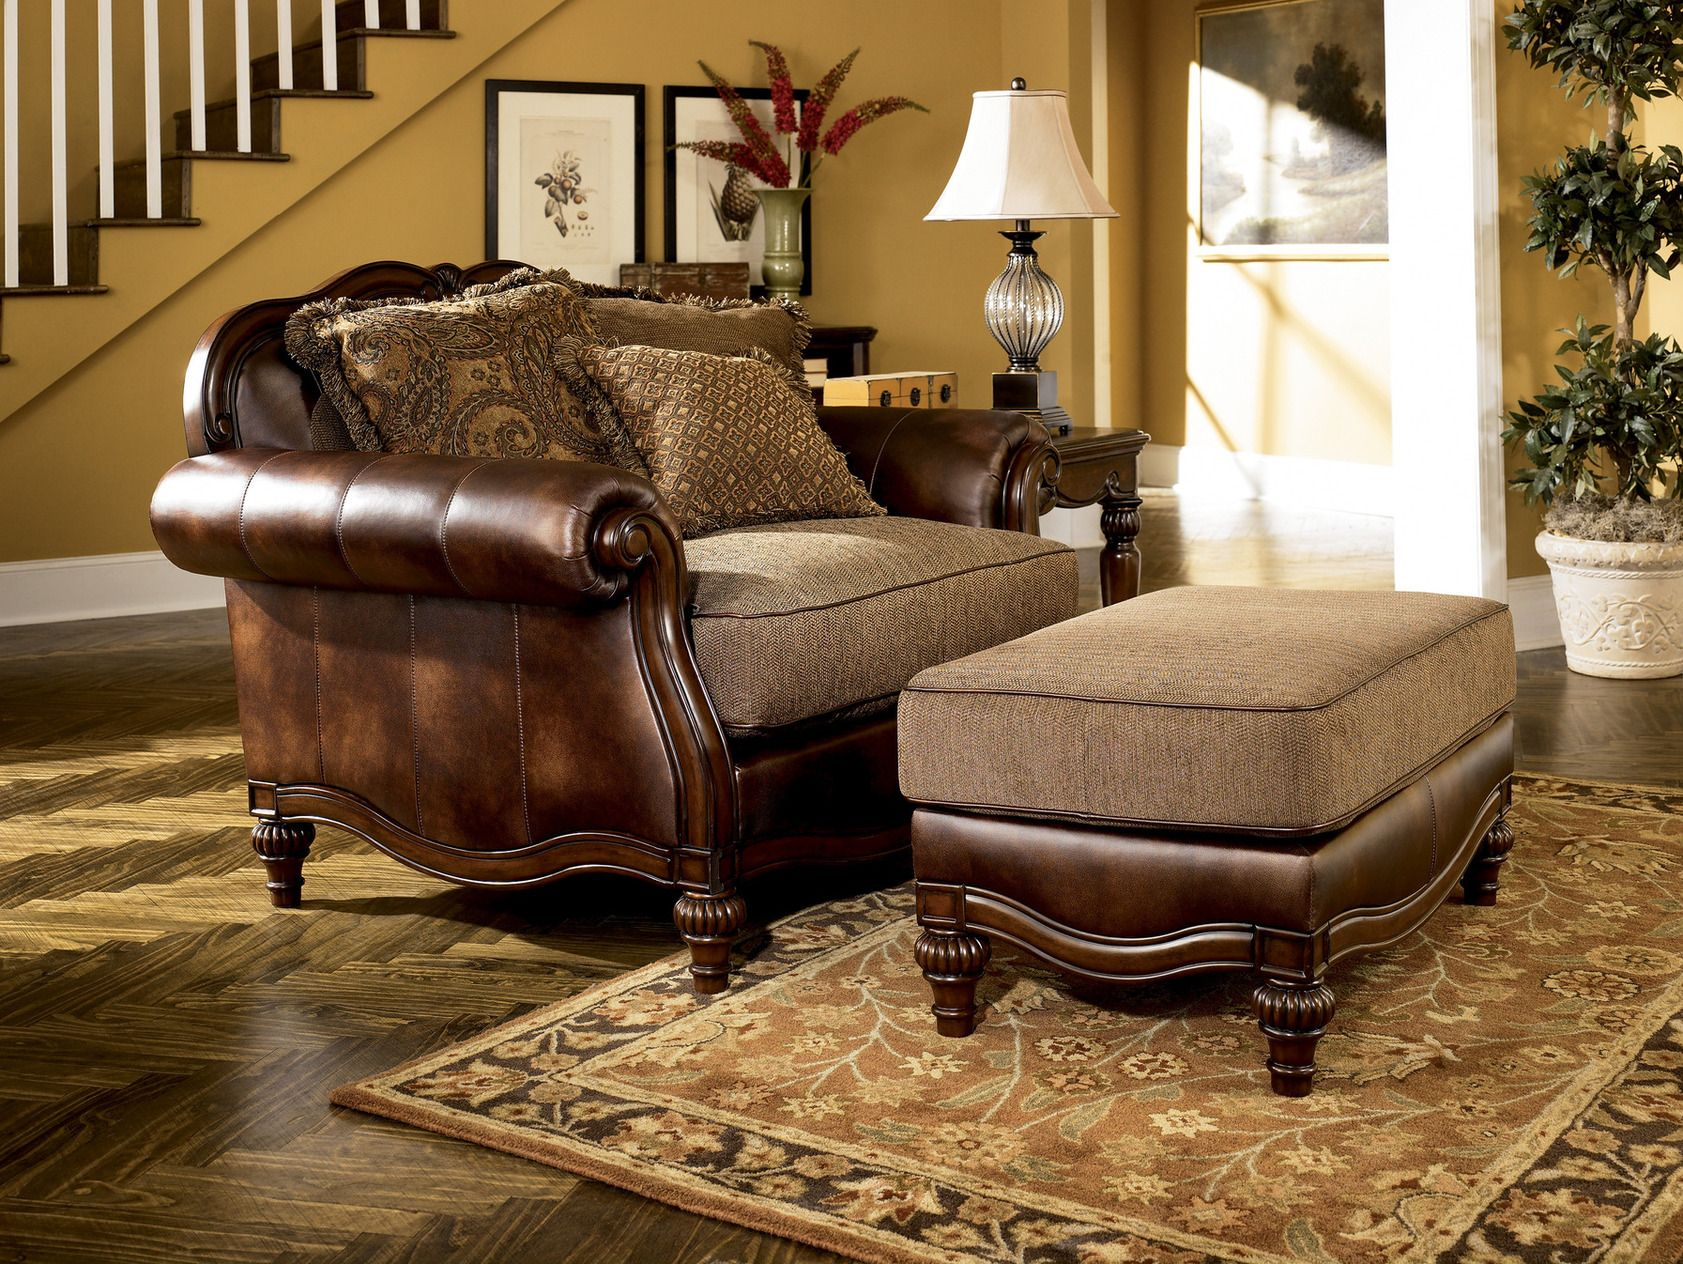 Brown European Traditional Faux Leather Fabric Sofa Set Couch Wood